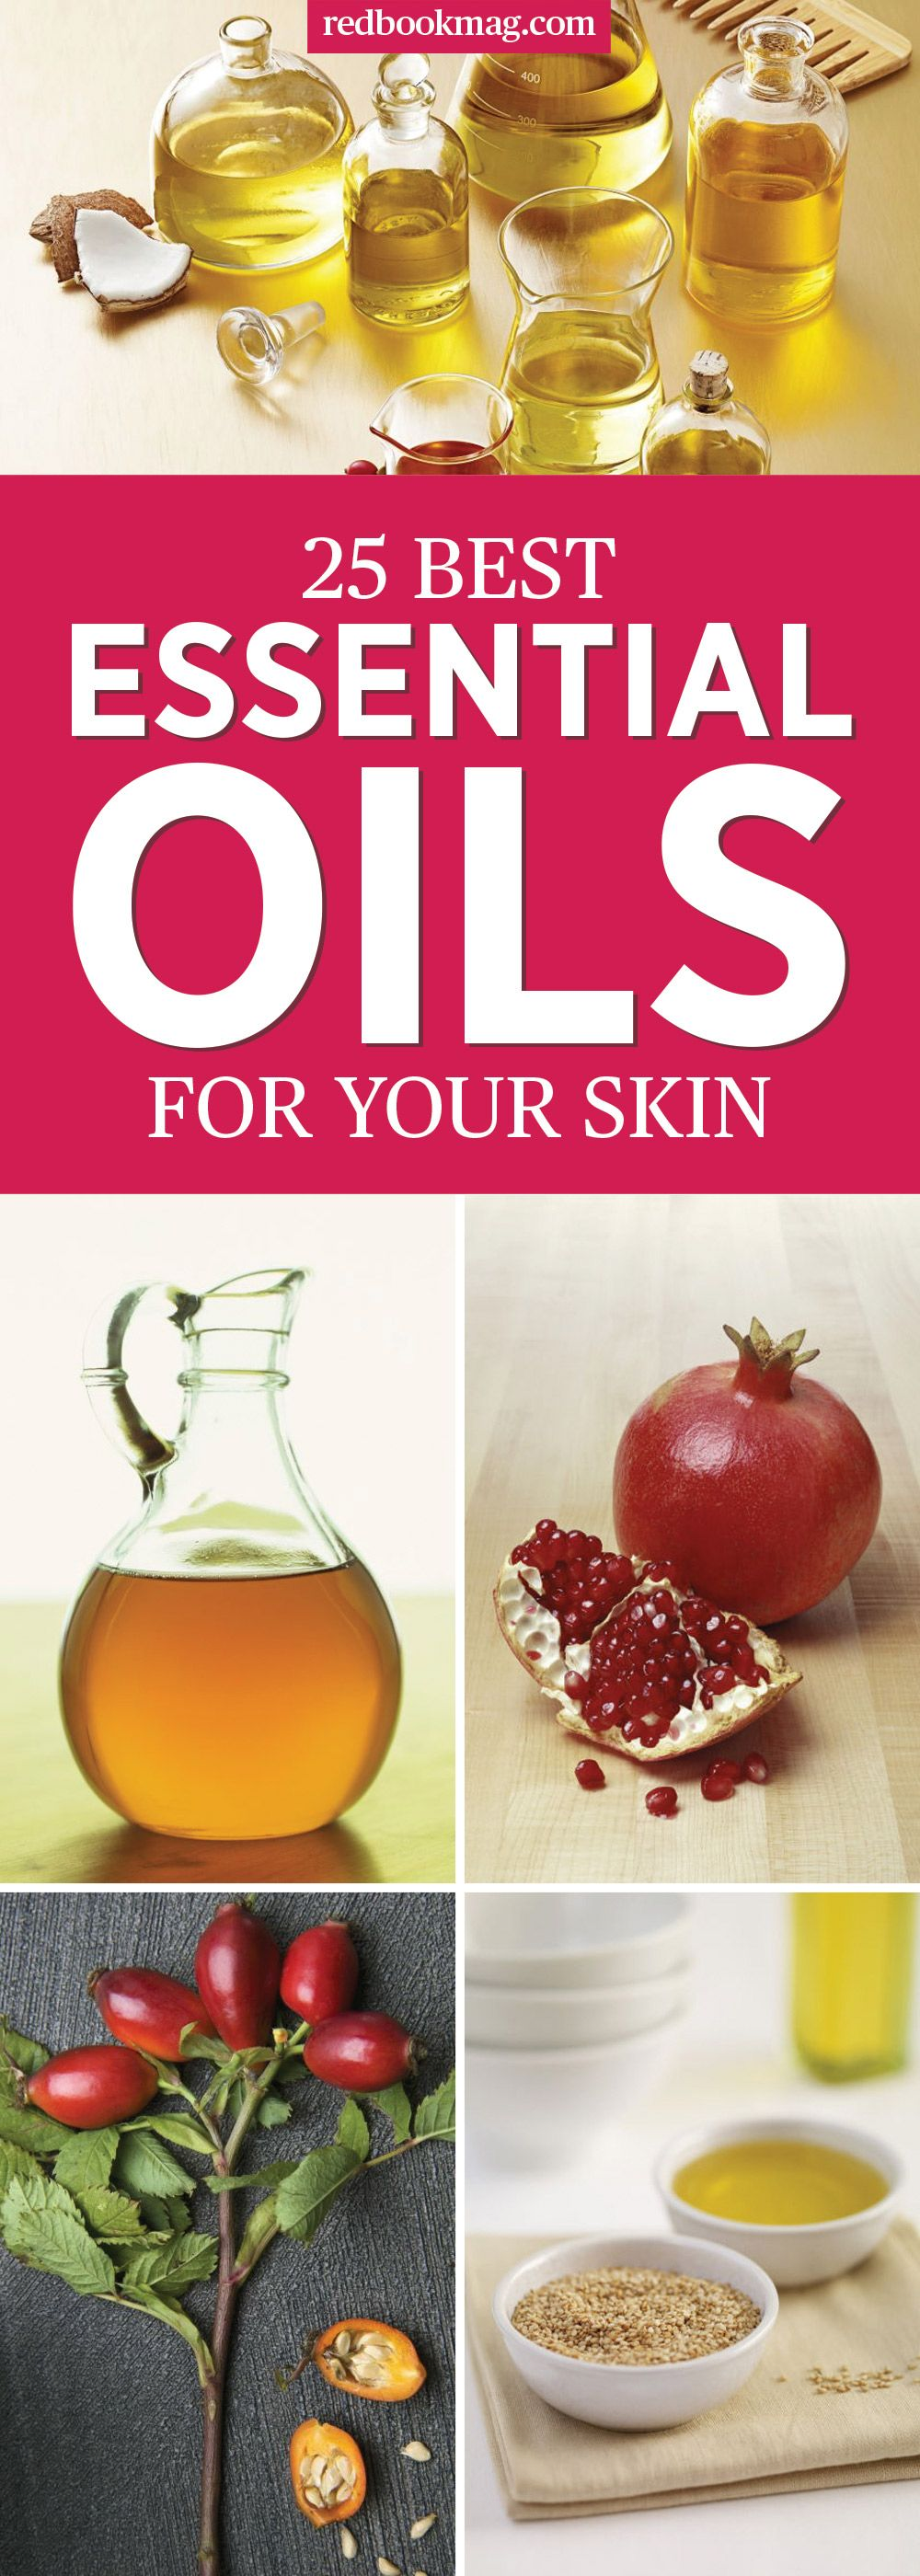 20 Best Essential Oils for Skin   Top Skincare Oils for Face and Body